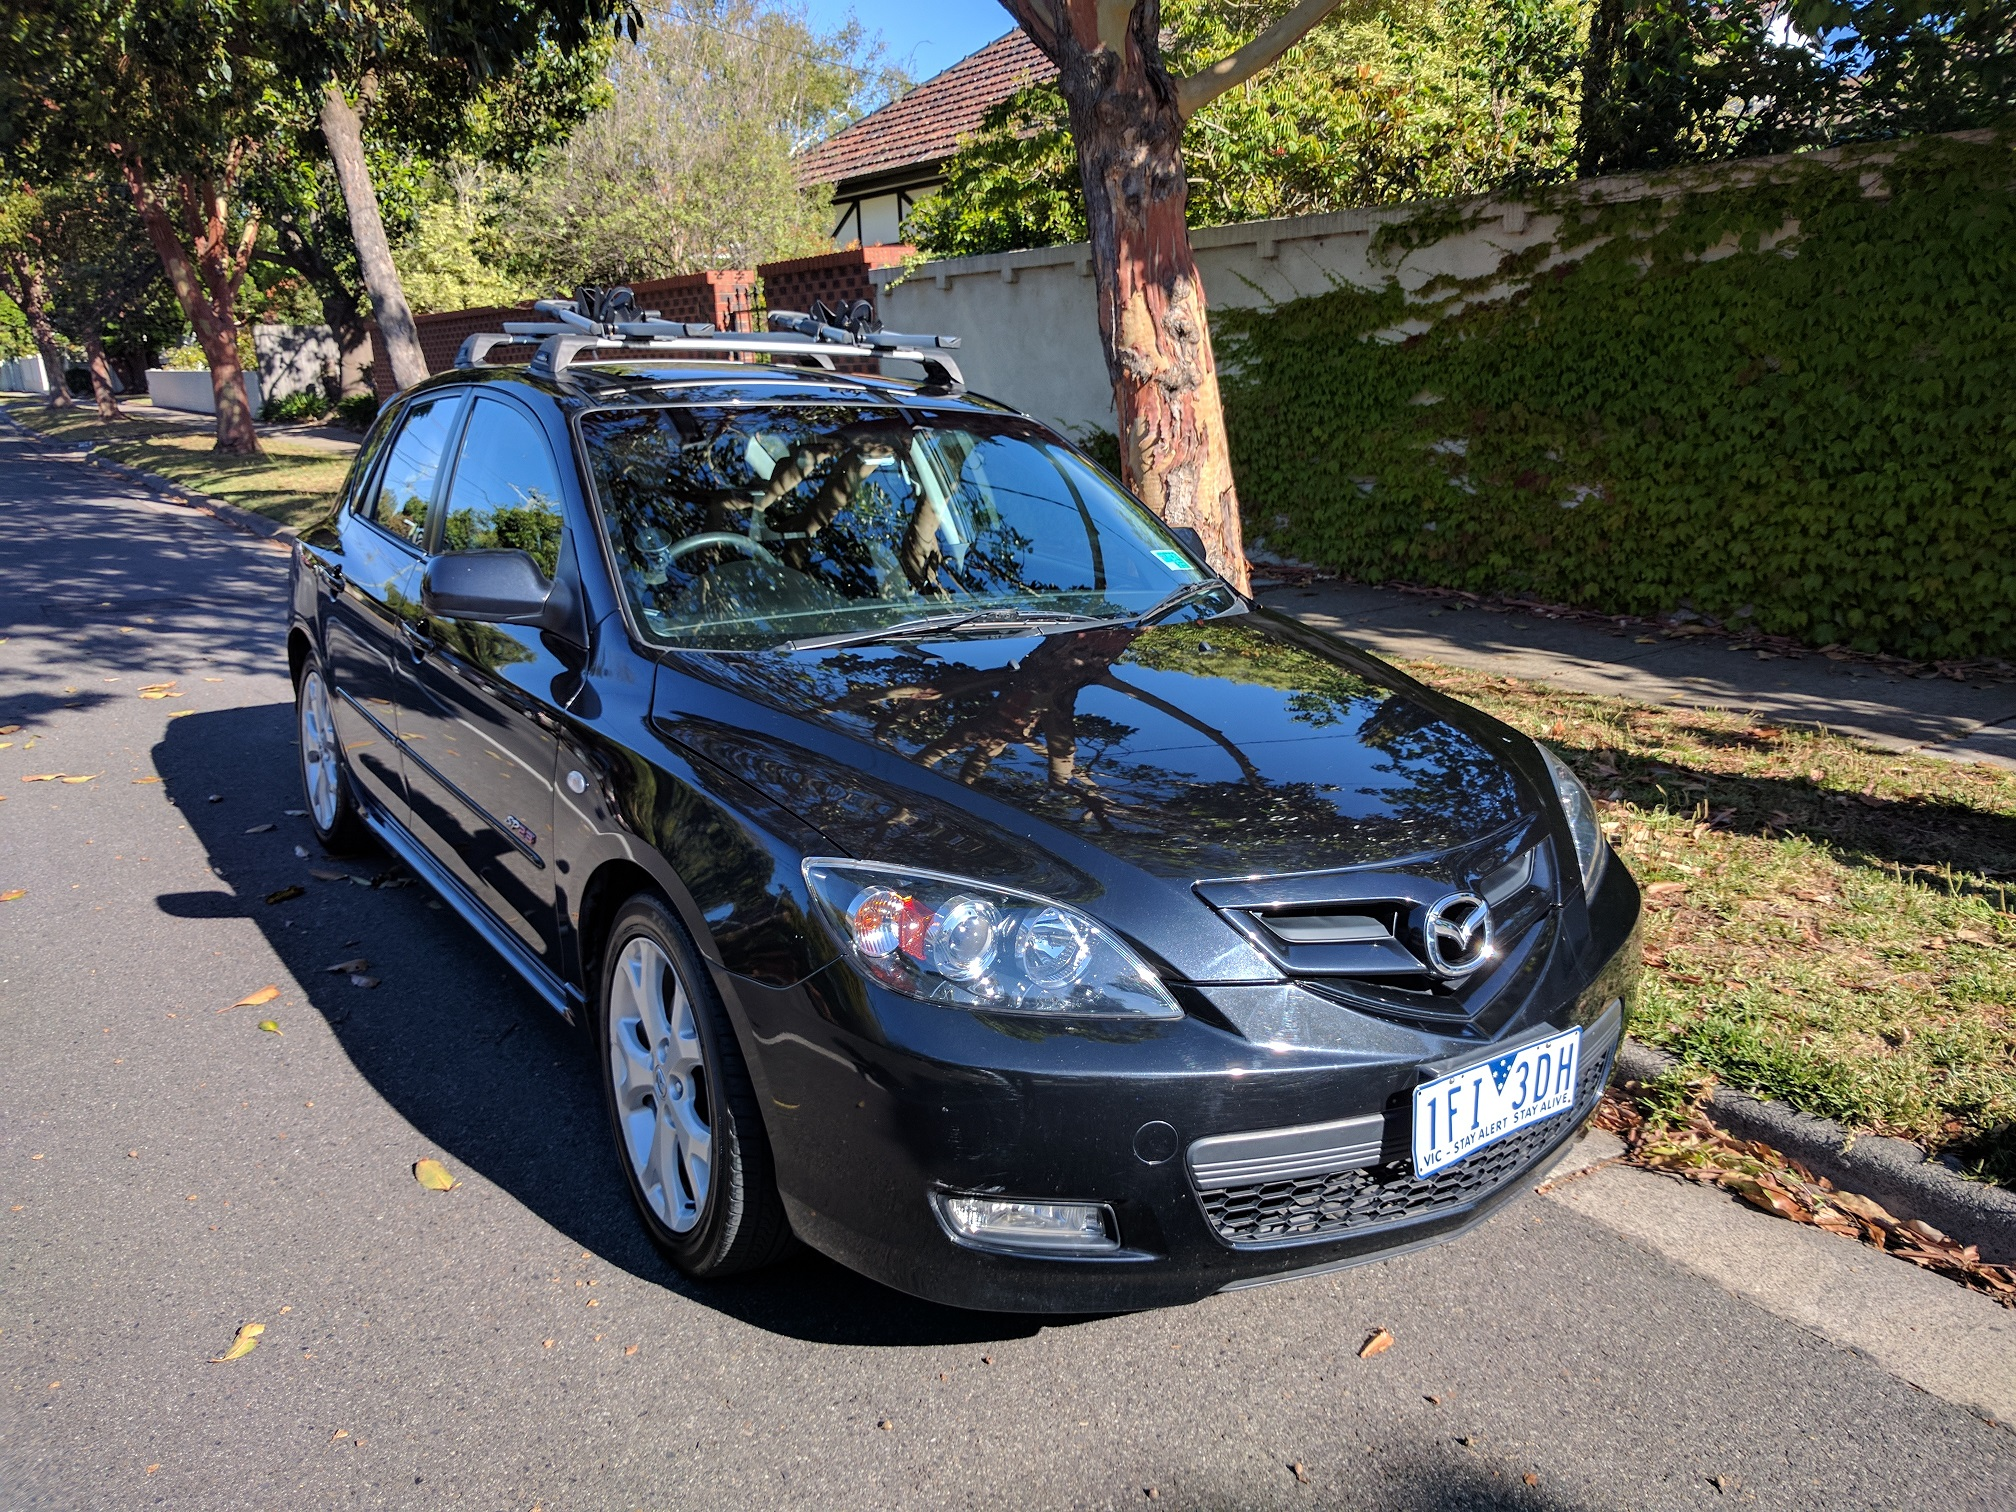 Picture of Perrin's 2007 Mazda 3 (SP23)